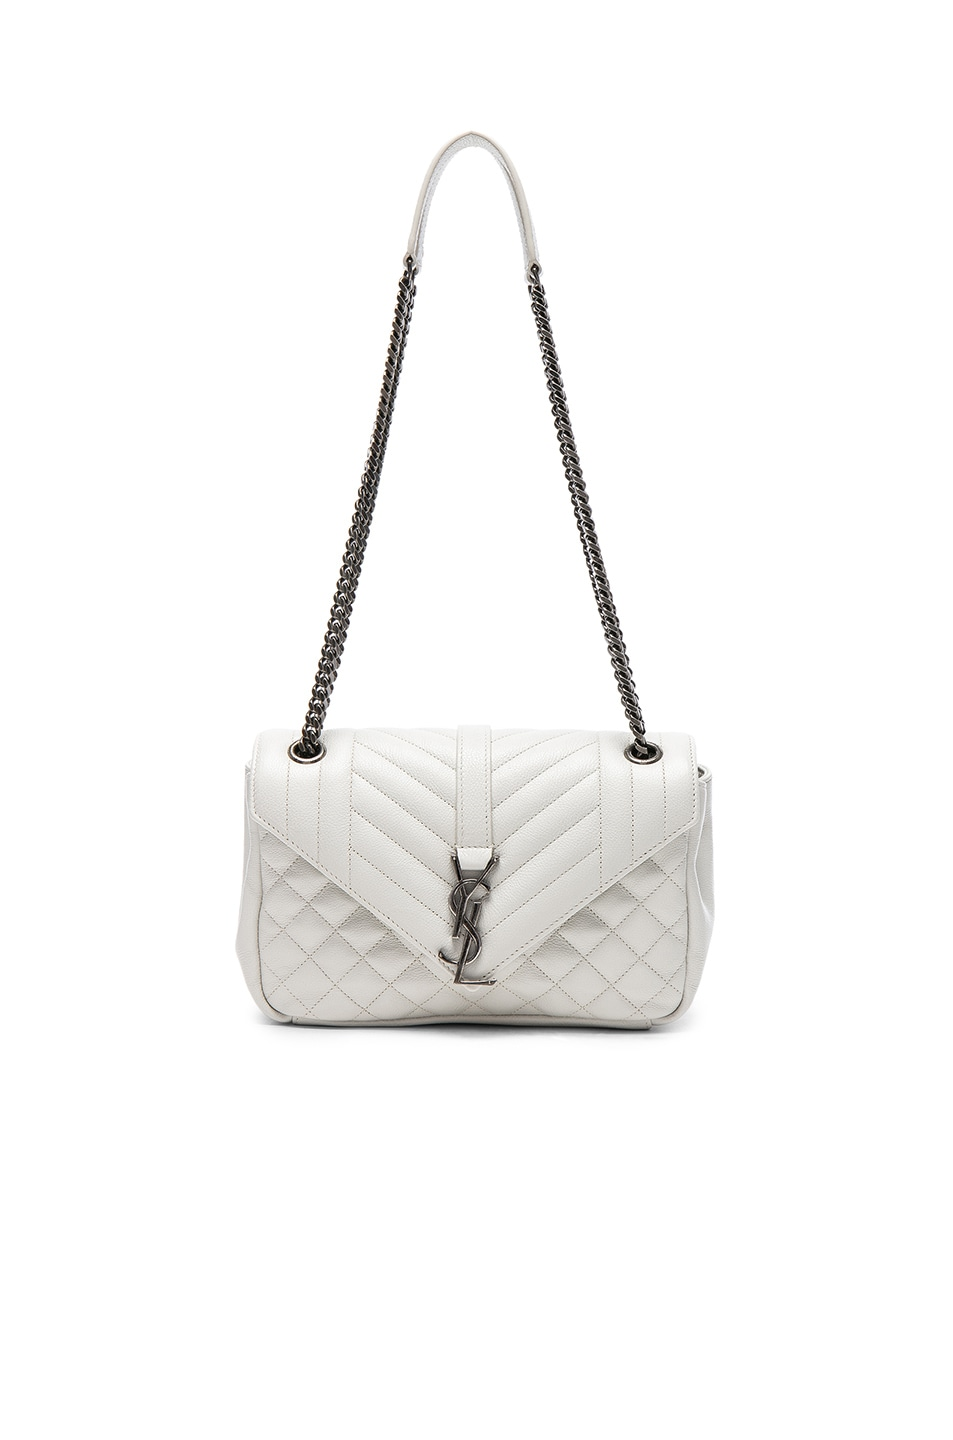 Image 1 of Saint Laurent Medium Envelope Chain Bag in White Chalk